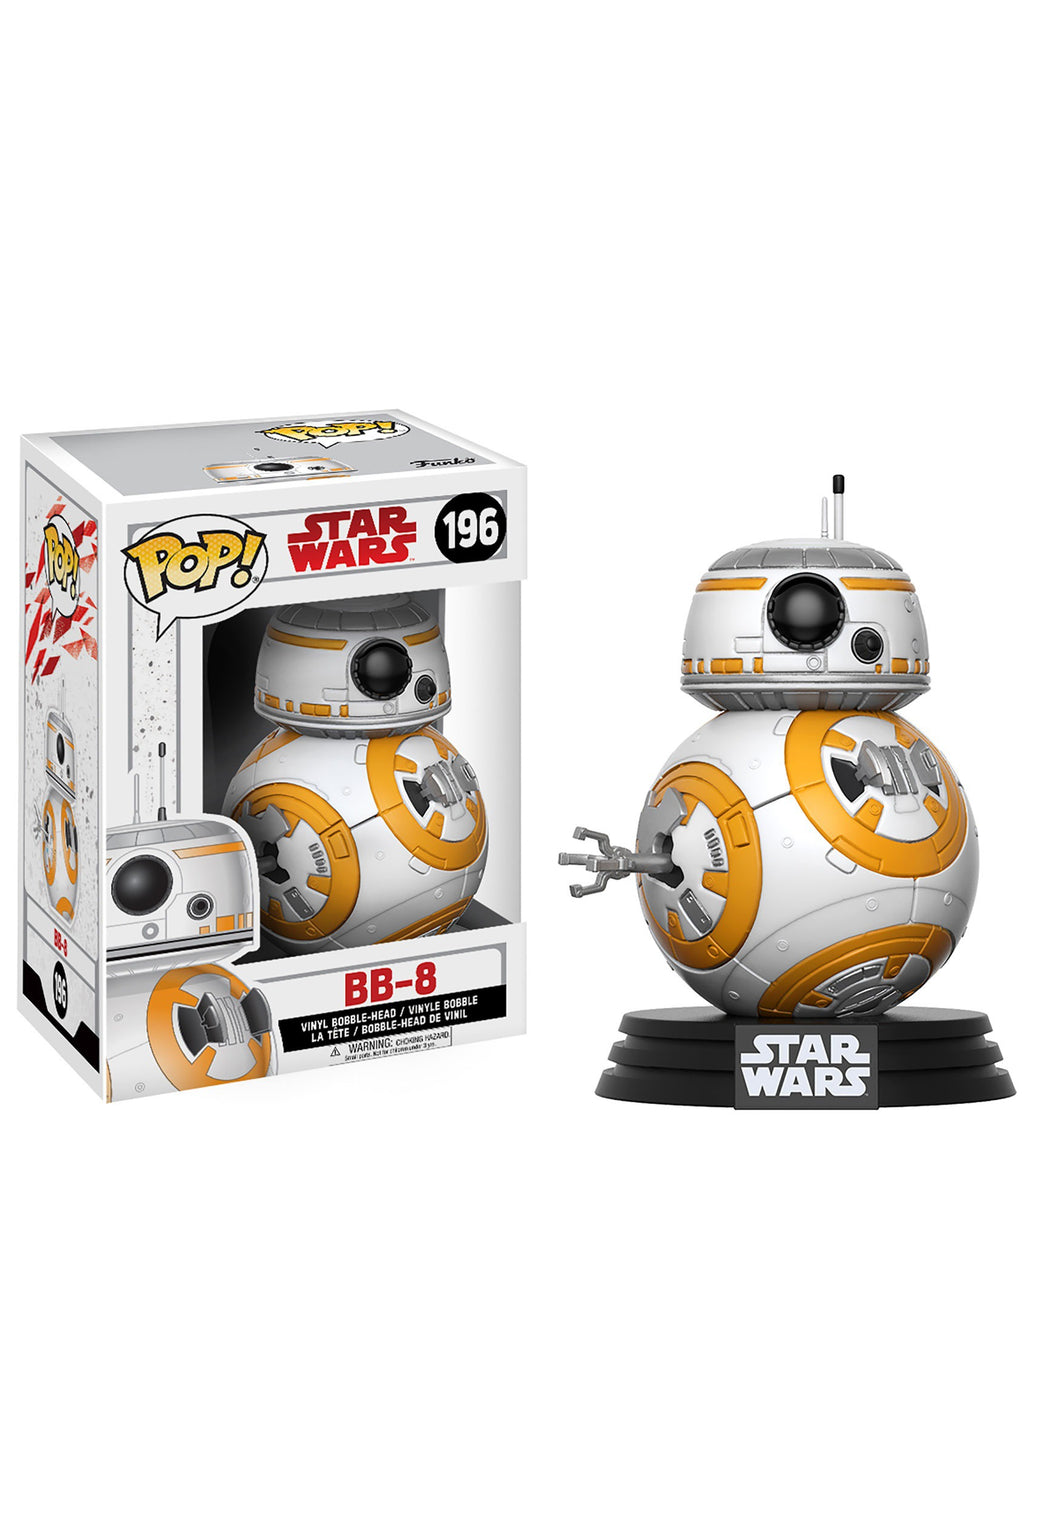 STAR WARS THE LAST JEDI FUNKO POP BB-8 BOBBLEHEAD FIGURE #196